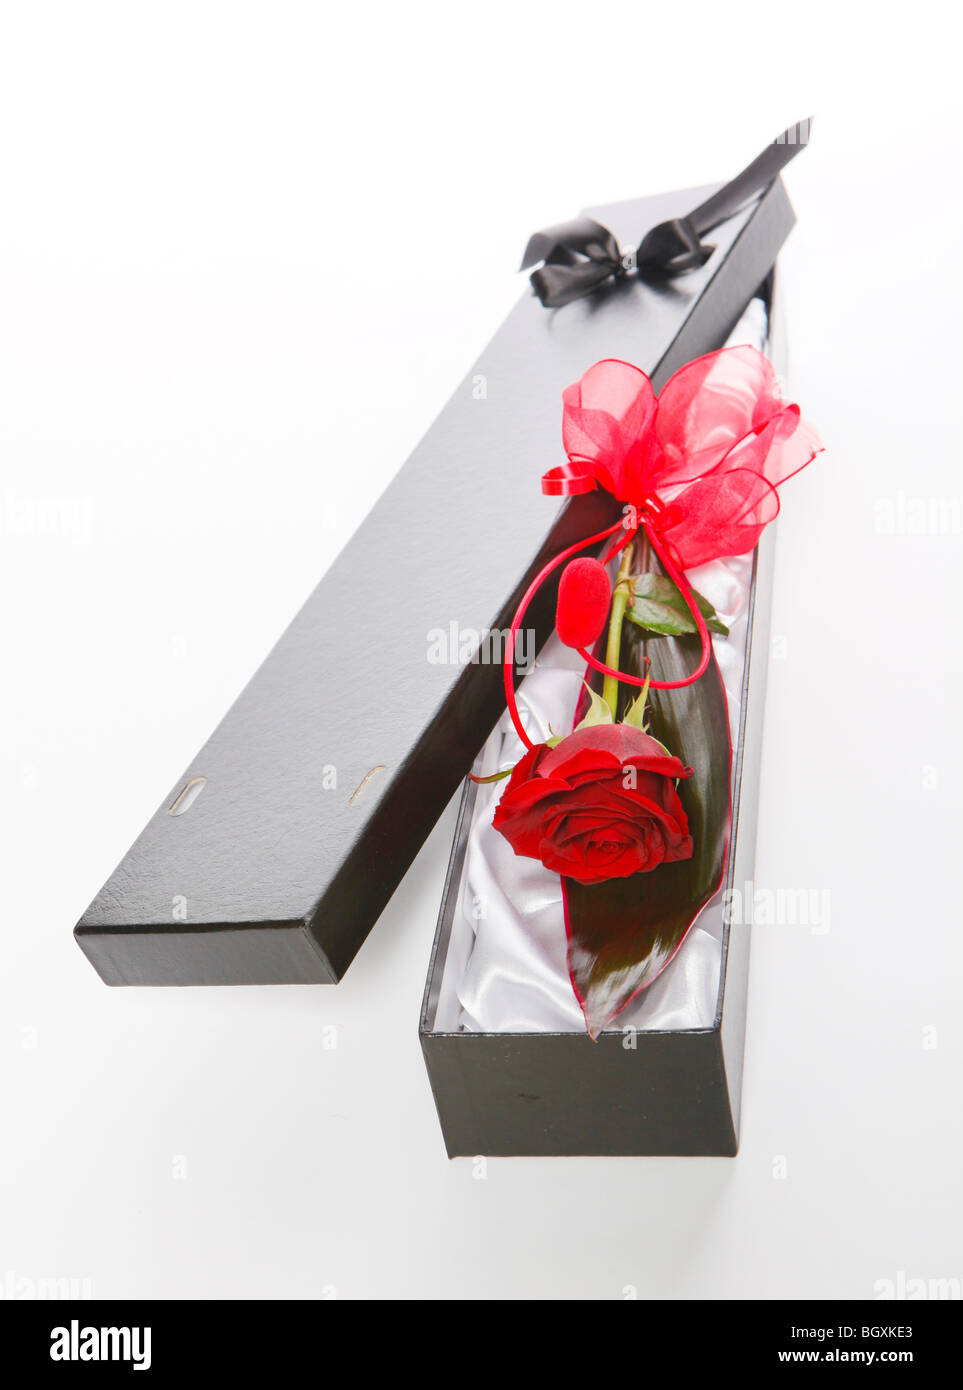 A Valentines Day Gift Of A Single Red Rose In A Black Gift Box Stock